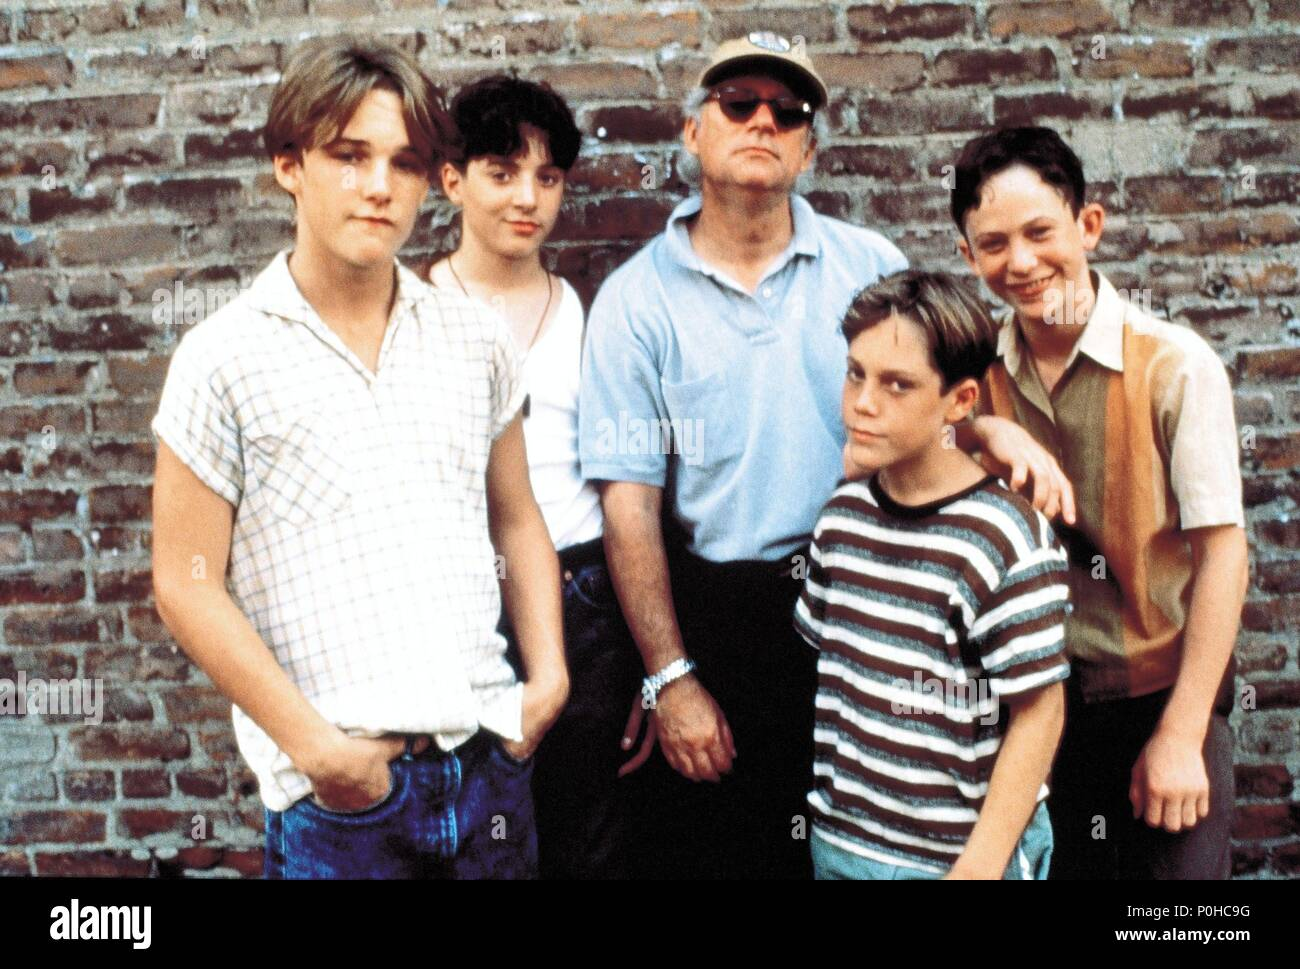 Original Film Title Sleepers English Title Sleepers Film Director Barry Levinson Year 1996 Stars Barry Levinson